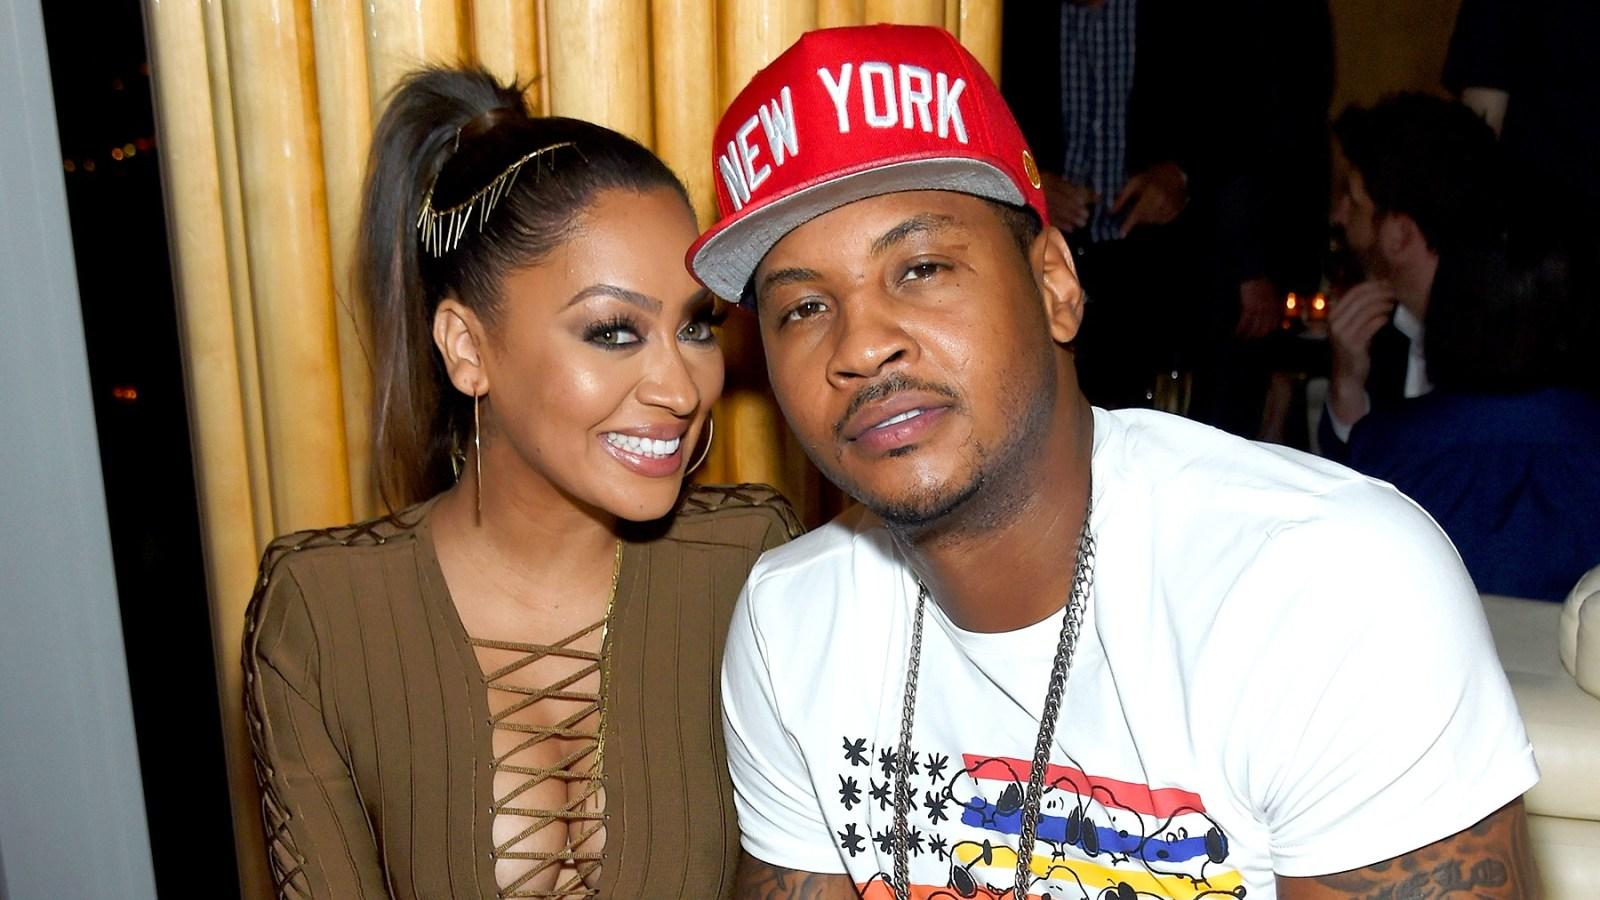 La La Anthony Pays Sweet Tribute To 'Hero' Carmelo On Father's Day - 'Thank You For Being An Amazing Dad'